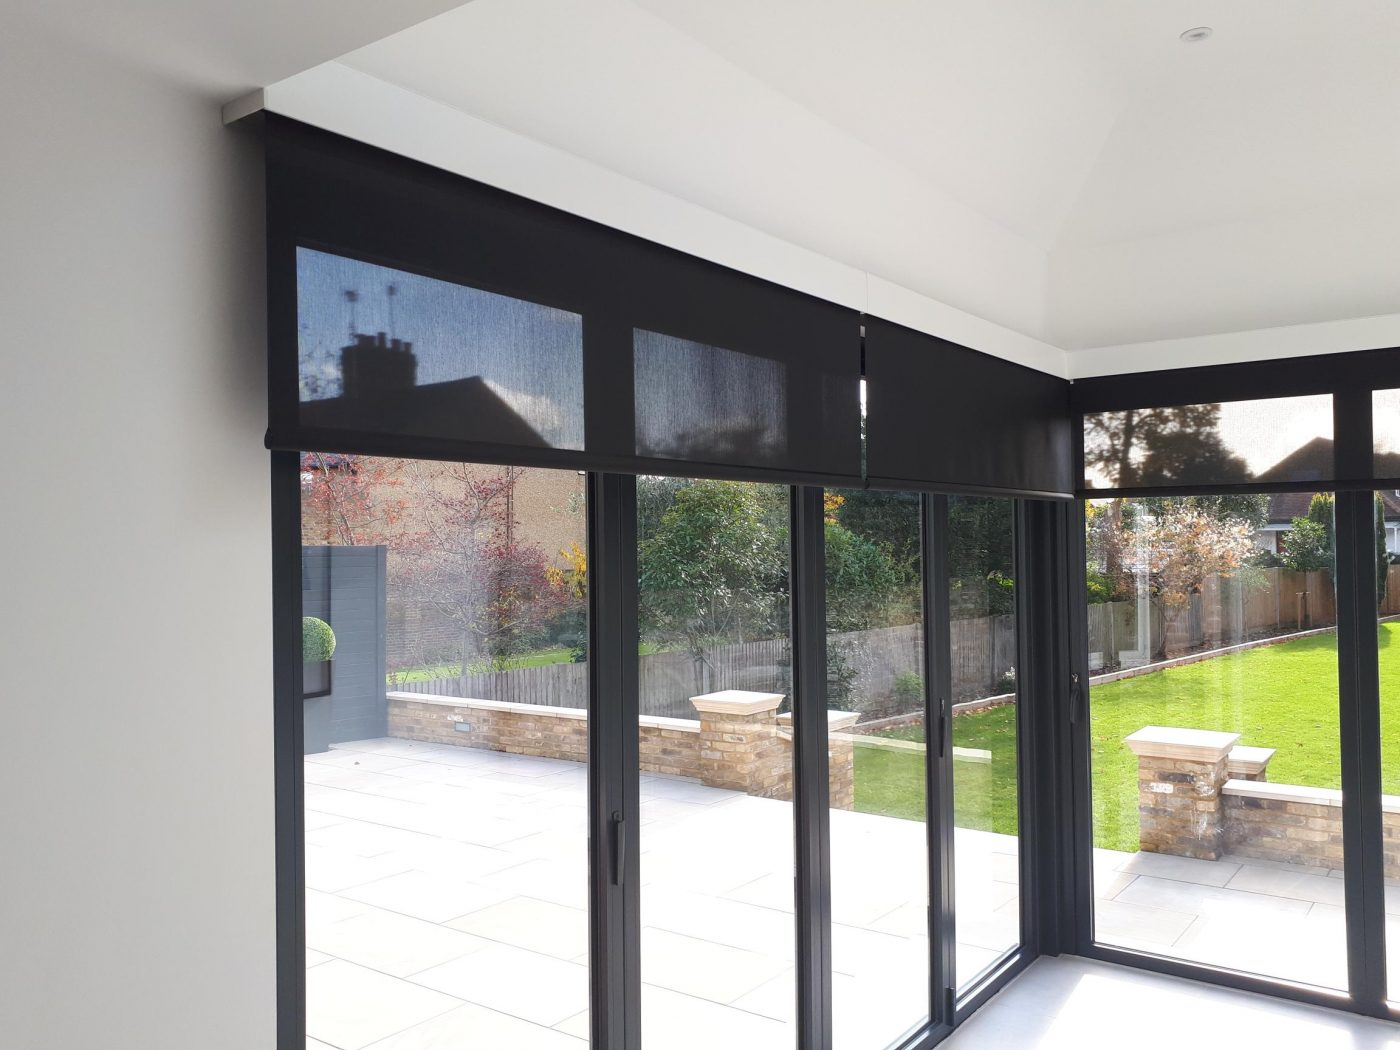 Electric Blinds For Bi Fold Sliding Doors The Electric